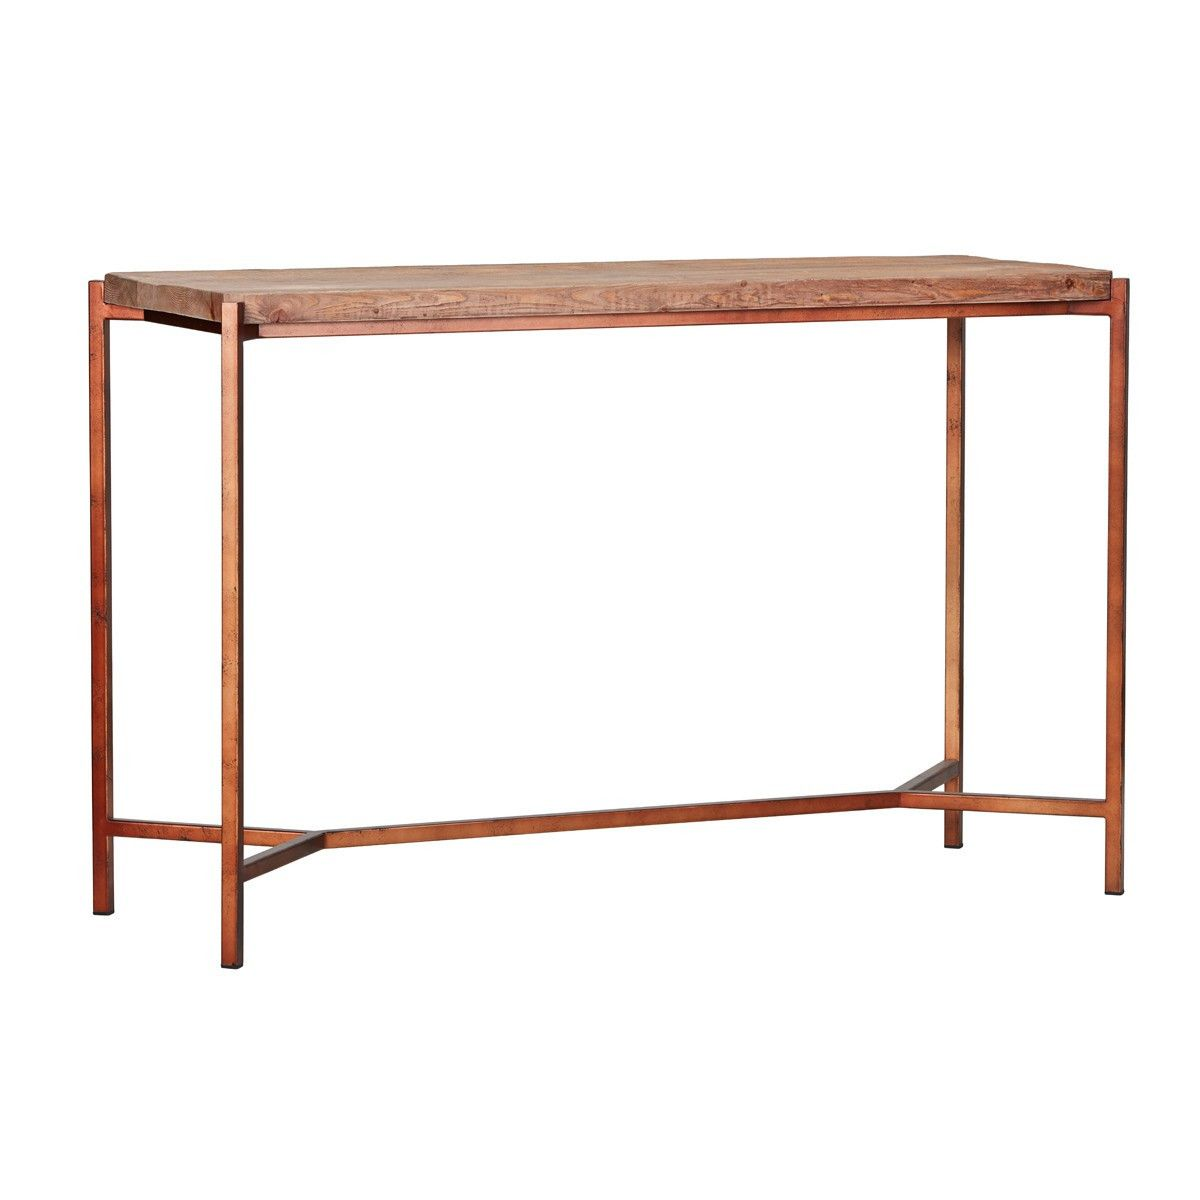 Ebony console table 51005748 console tables consoles and living classic home ebony console table 51005748 geotapseo Image collections